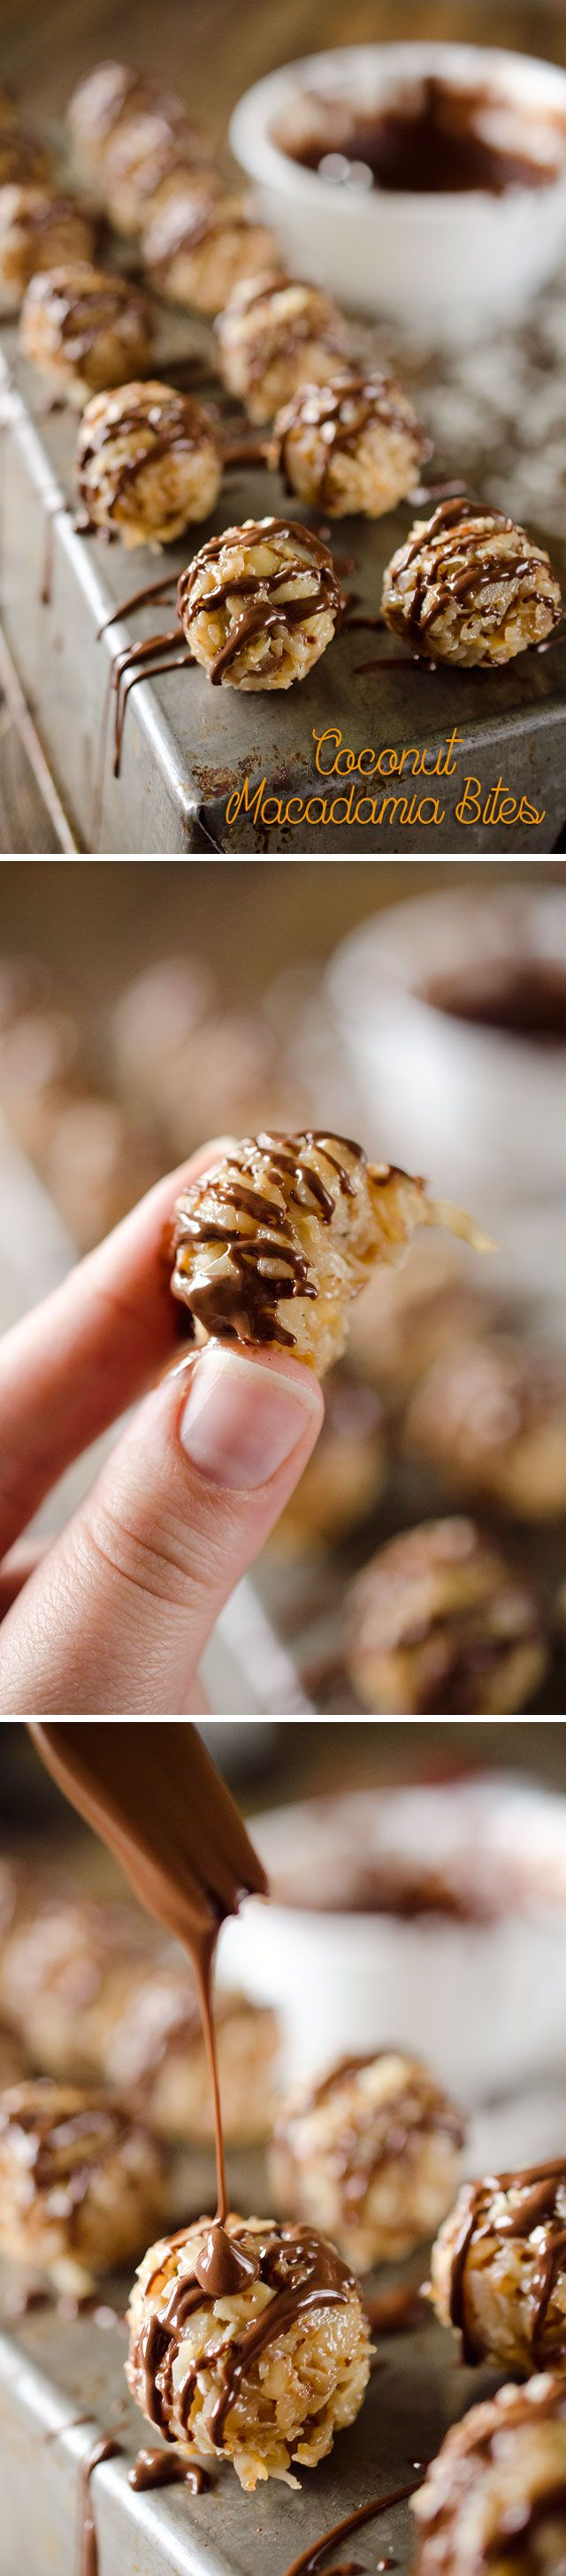 GF Coconut Macadamia Bites are rich little candies made with toasted coconut and macadamia nuts, caramelized sweetened condensed milk and sea salt all drizzled with dark chocolate for the perfect sweet and salty dessert!